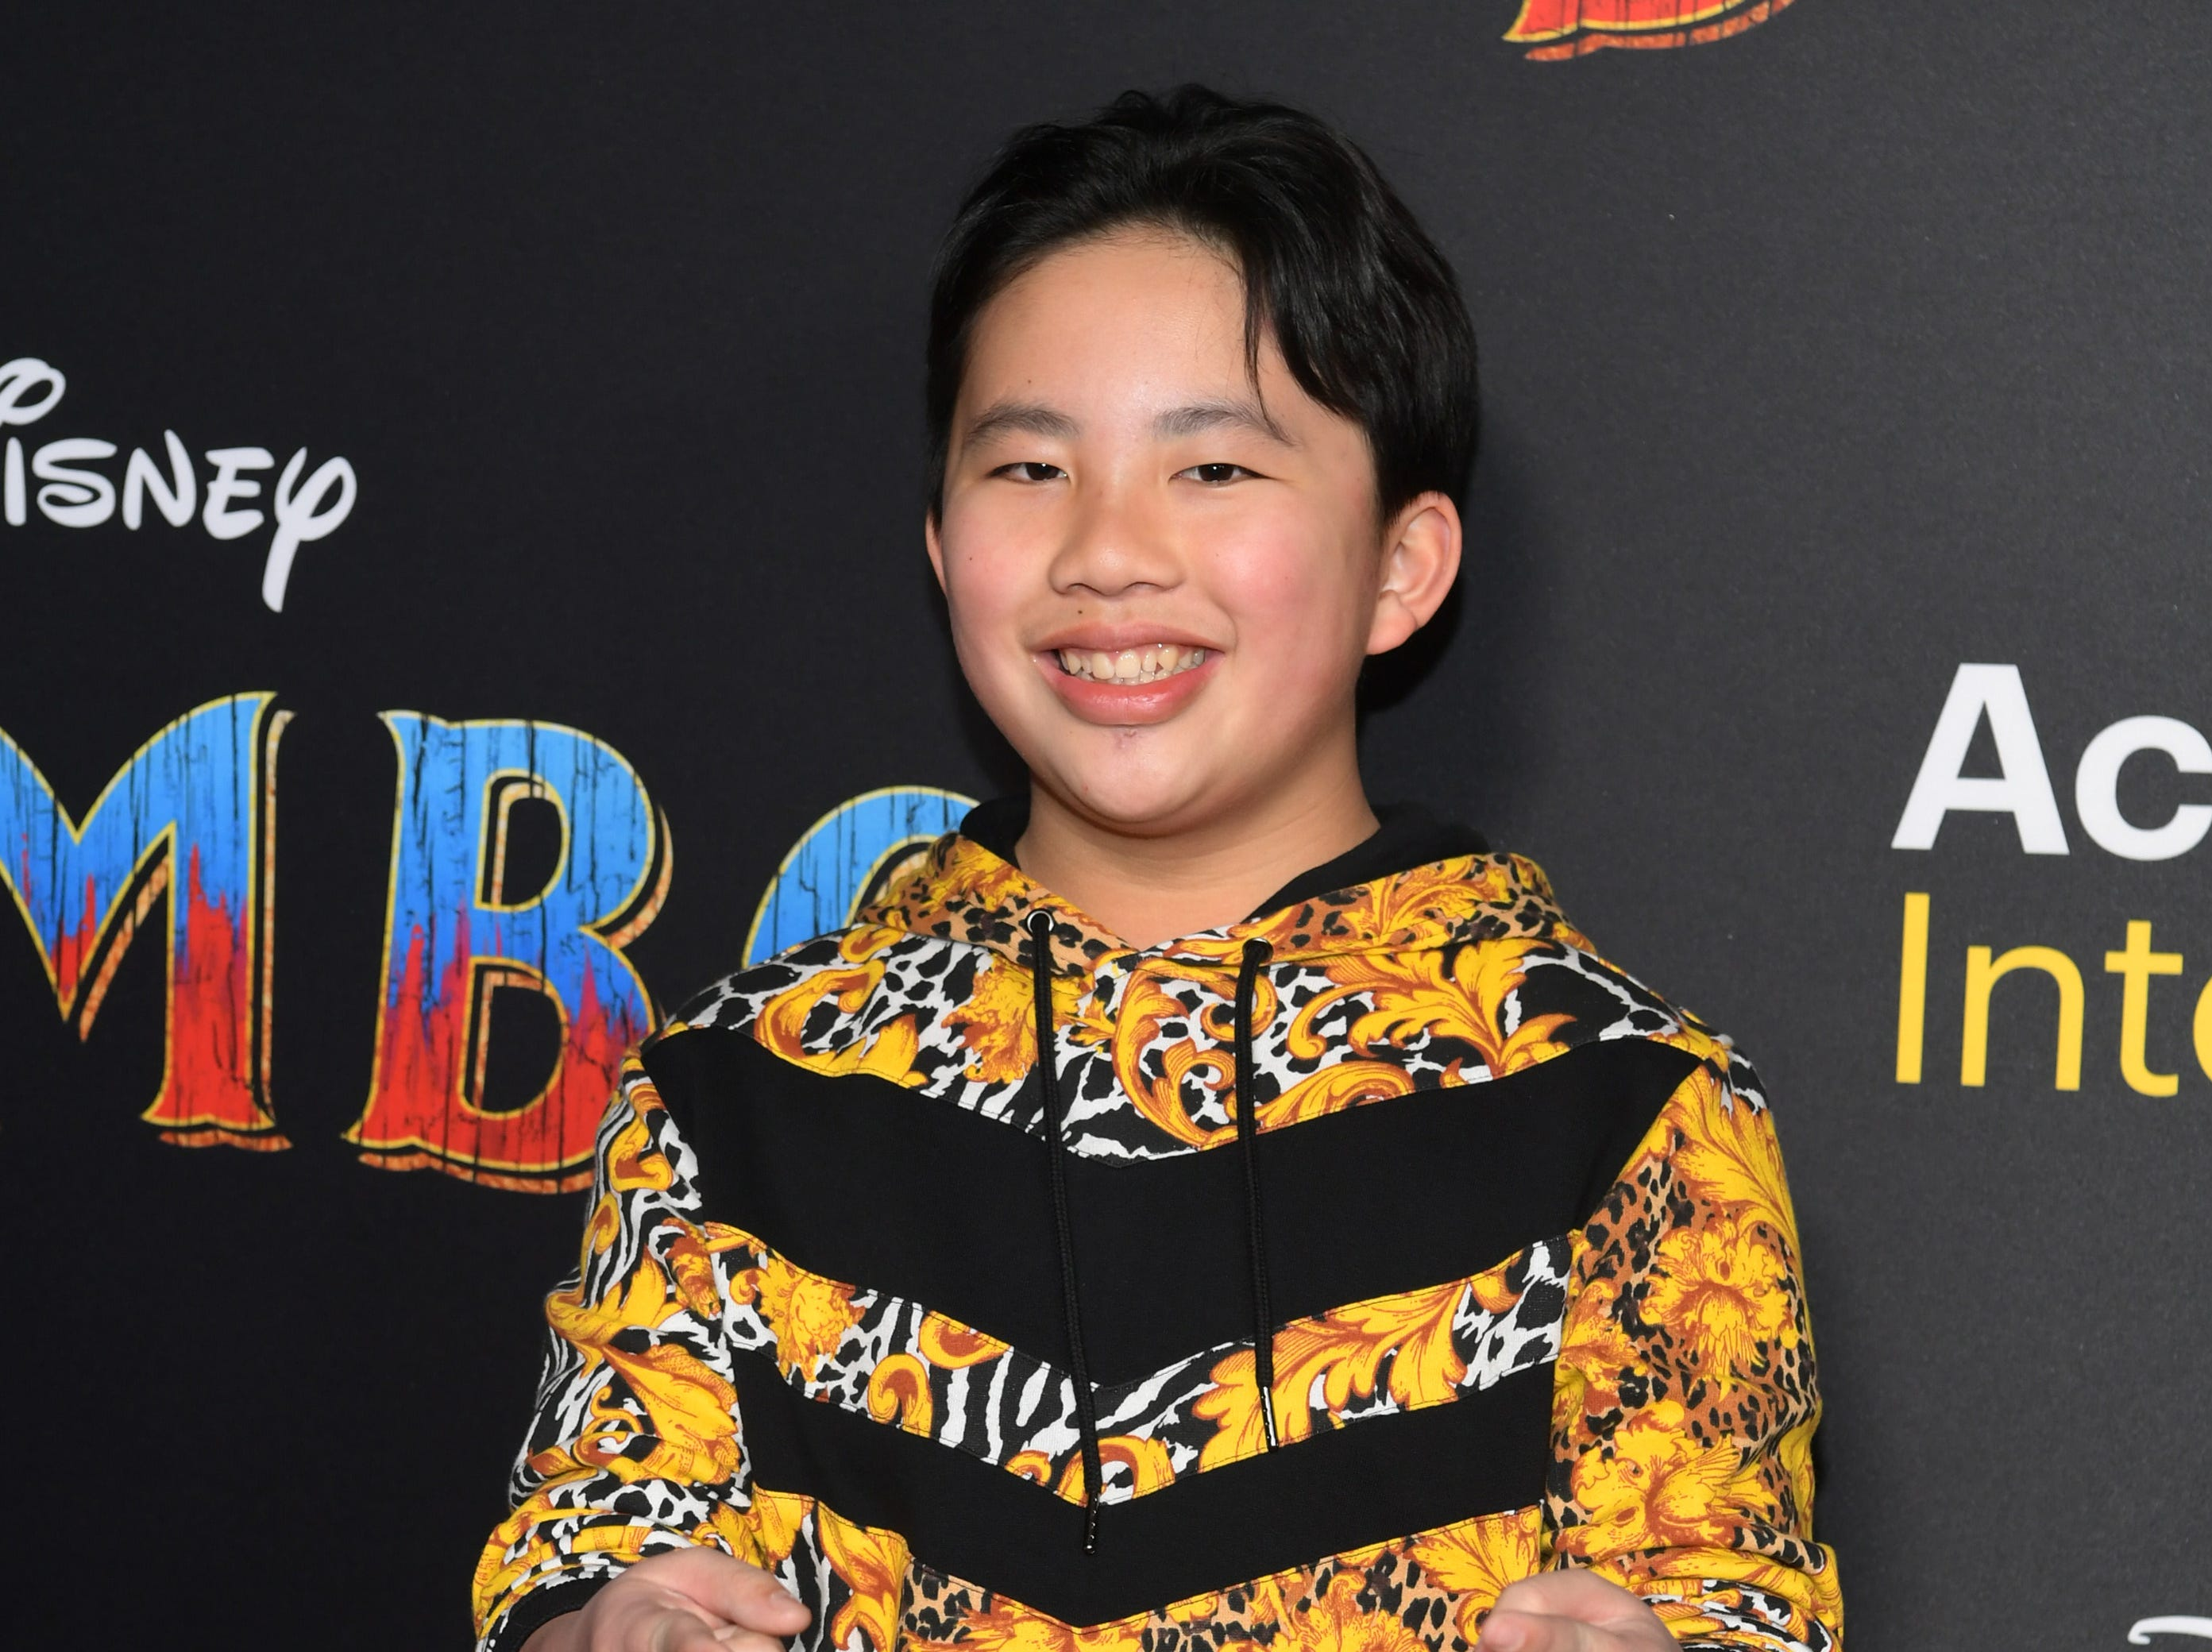 """LOS ANGELES, CALIFORNIA - MARCH 11: Albert Tsai attends the premiere of Disney's """"Dumbo"""" at El Capitan Theatre on March 11, 2019 in Los Angeles, California. (Photo by Emma McIntyre/Getty Images) ORG XMIT: 775305572 ORIG FILE ID: 1135227535"""